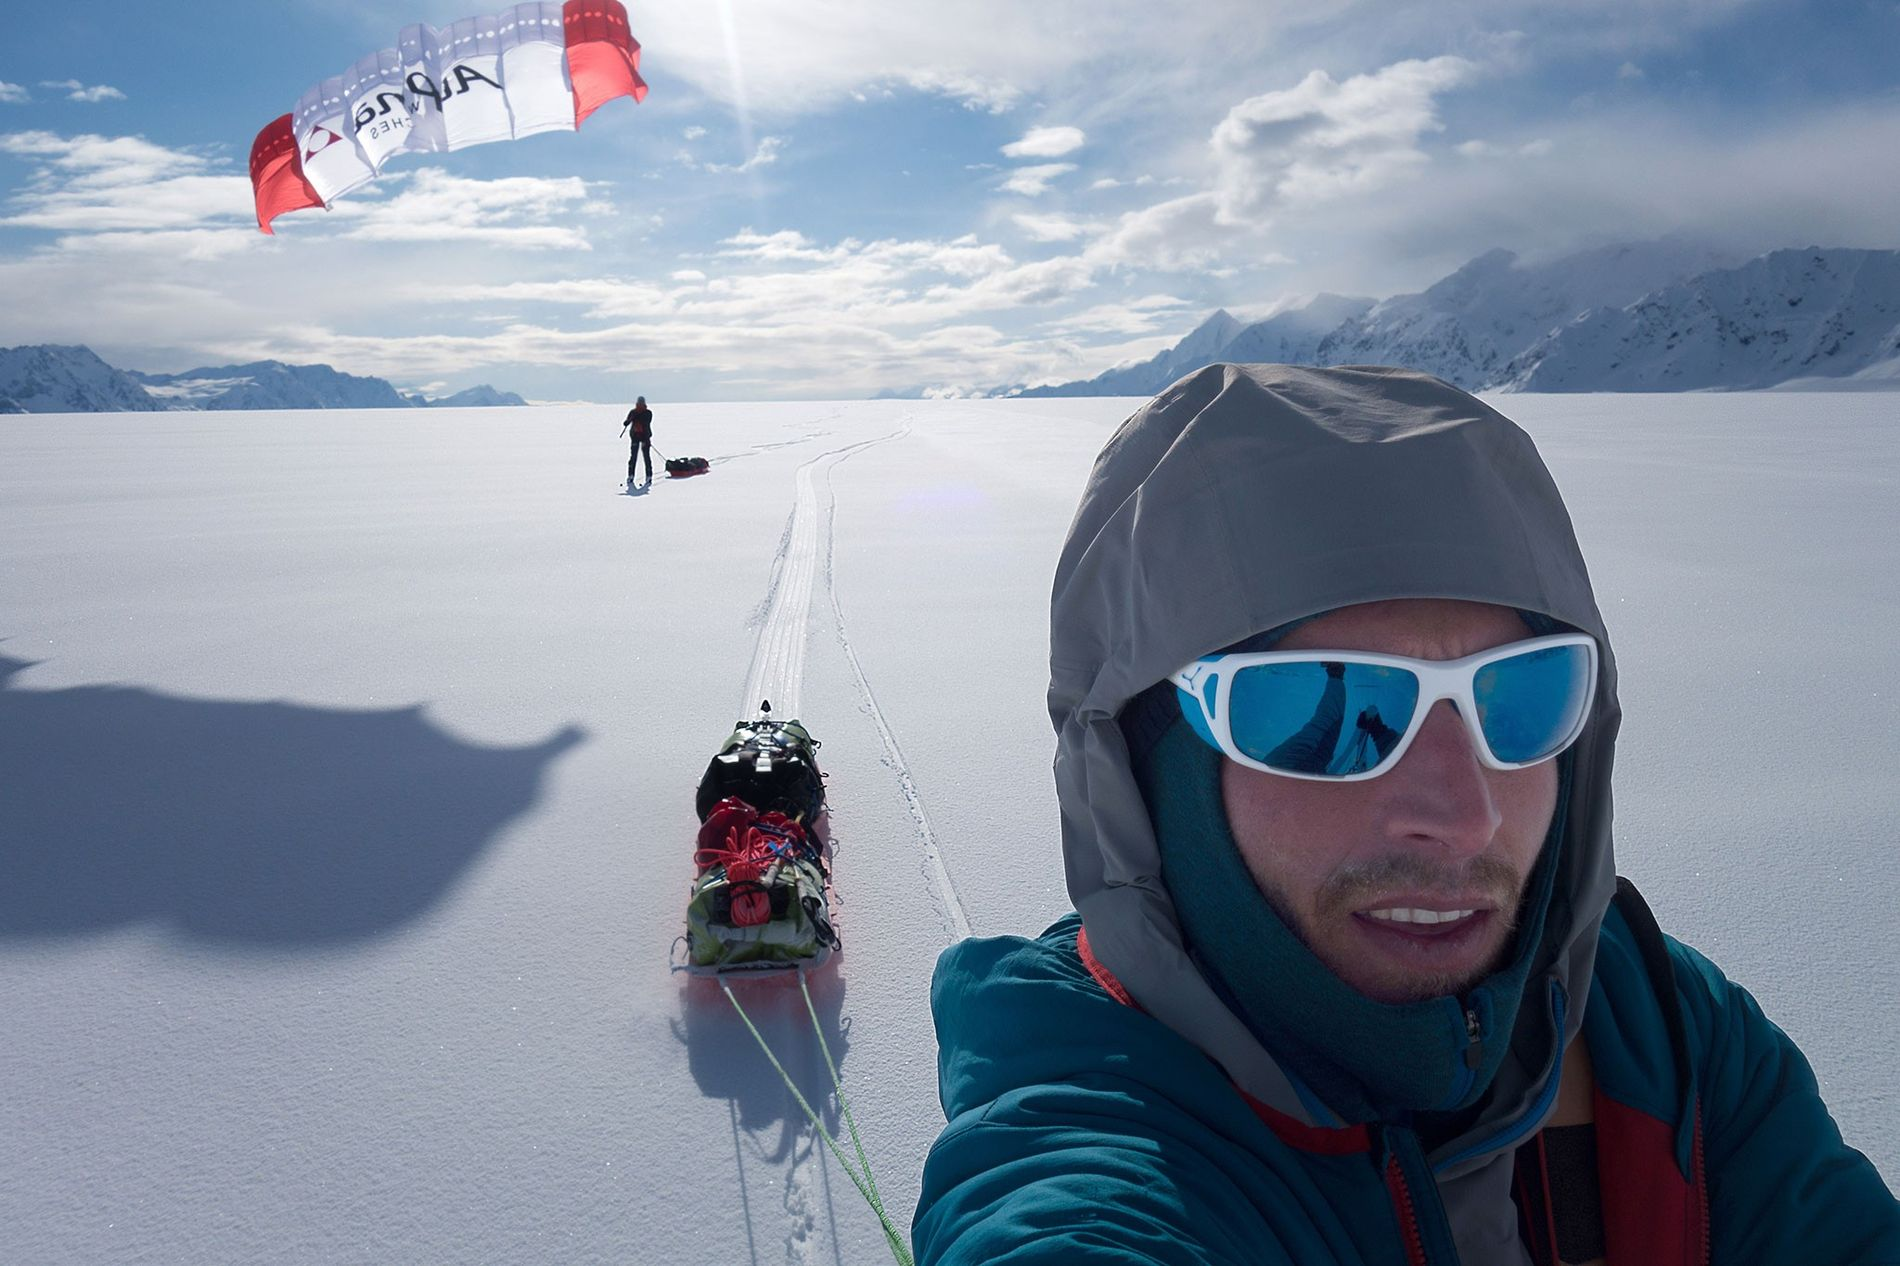 With the wind at their backs, the pair use ski-sails to pull themselves and their sleds along a portion of smooth terrain.